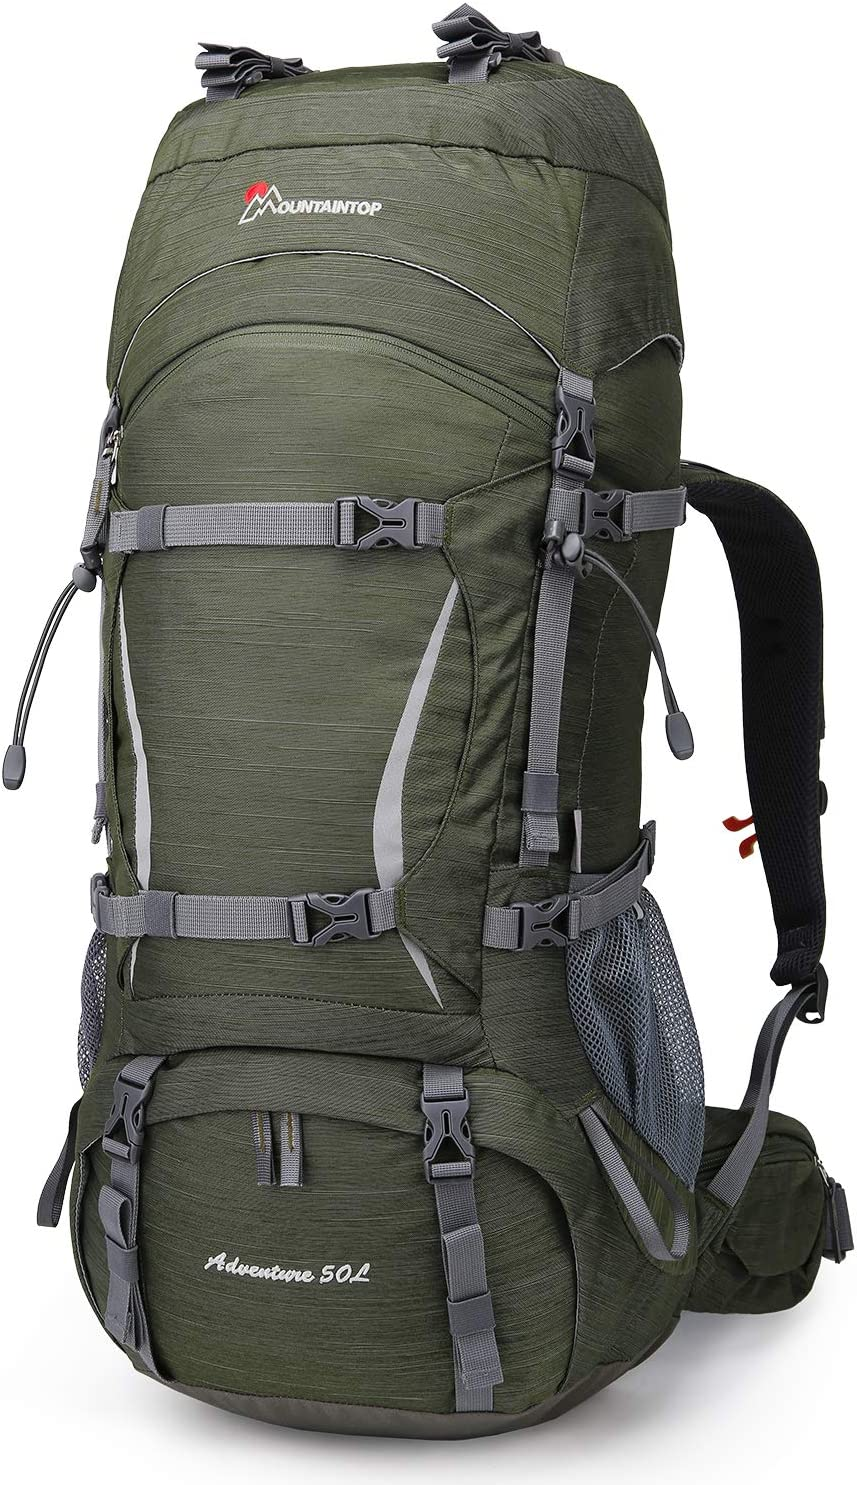 MOUNTAINTOP 50 Liter Hiking Internal Frame Backpack with Rain Cover